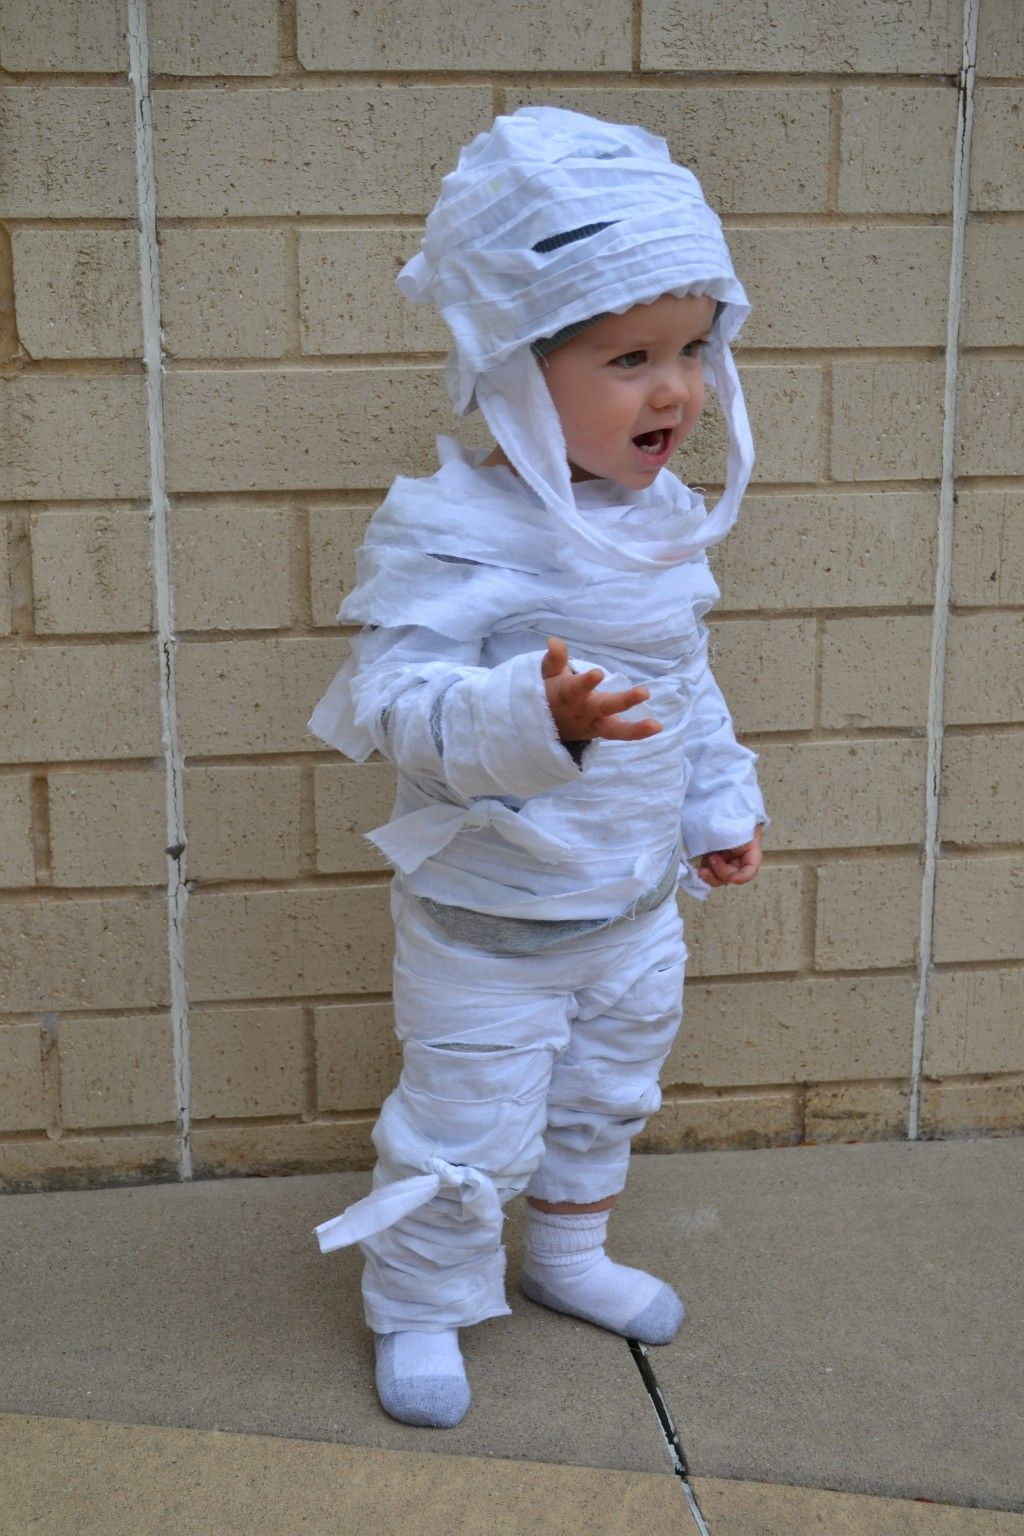 How To Make An Easy, No-Sew, Child's Mummy Costume | Children s ...